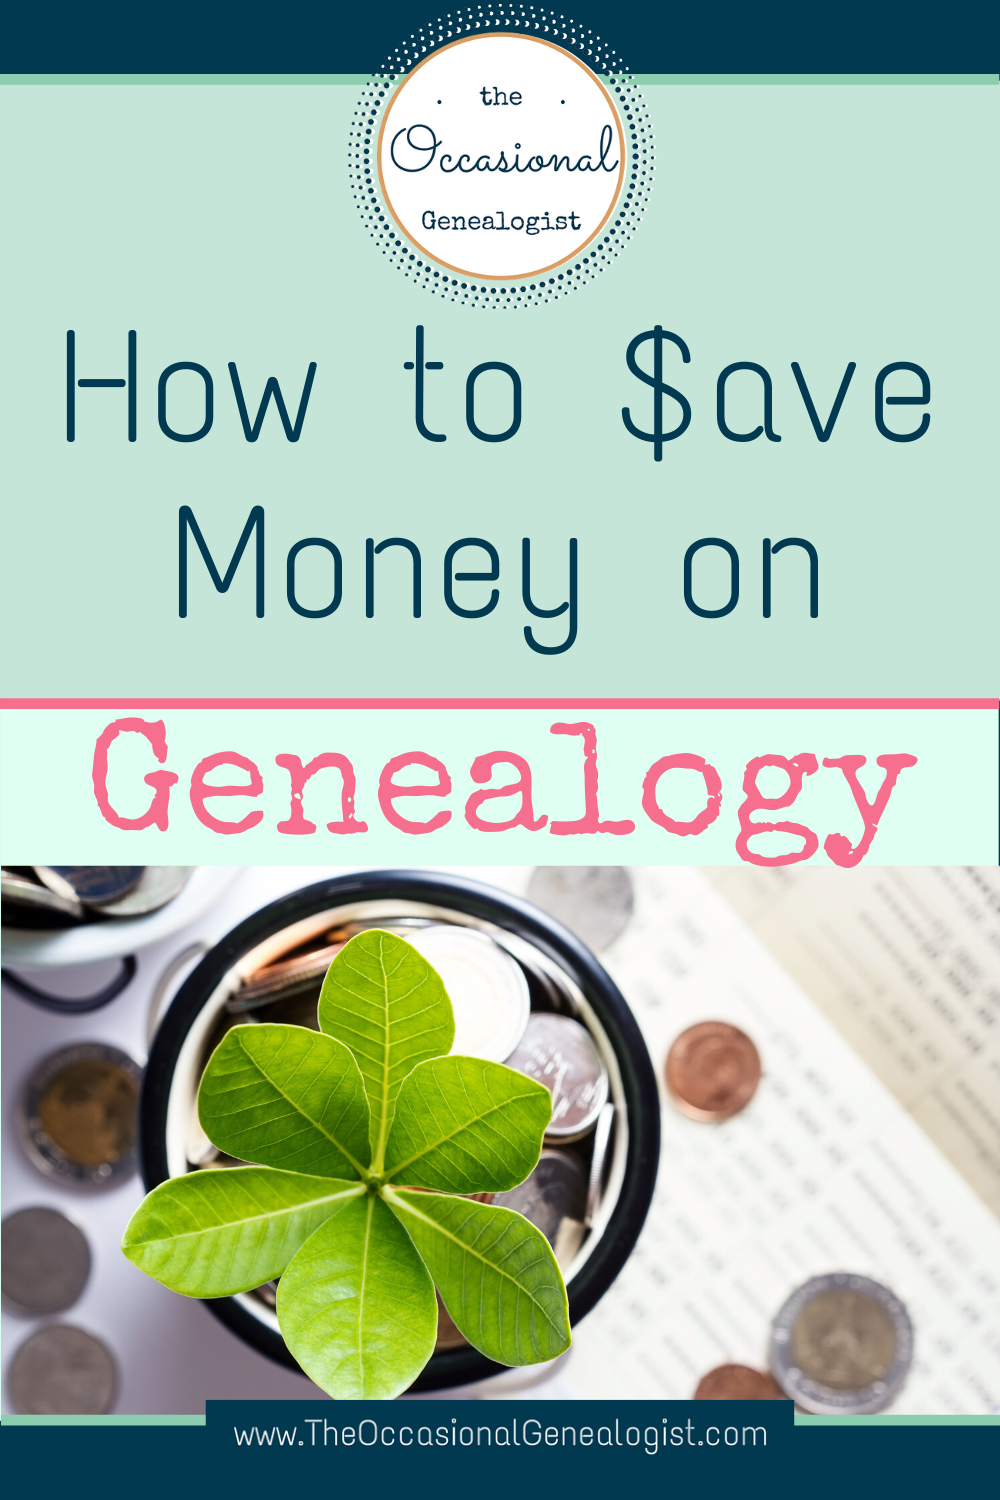 Save on genealogy subscriptions and services with these tips. Get genealogy records without paying for a subscription. | The Occasional Genealogist #genealogy #frugal #TheOccasionalGenealogist #familyhistory